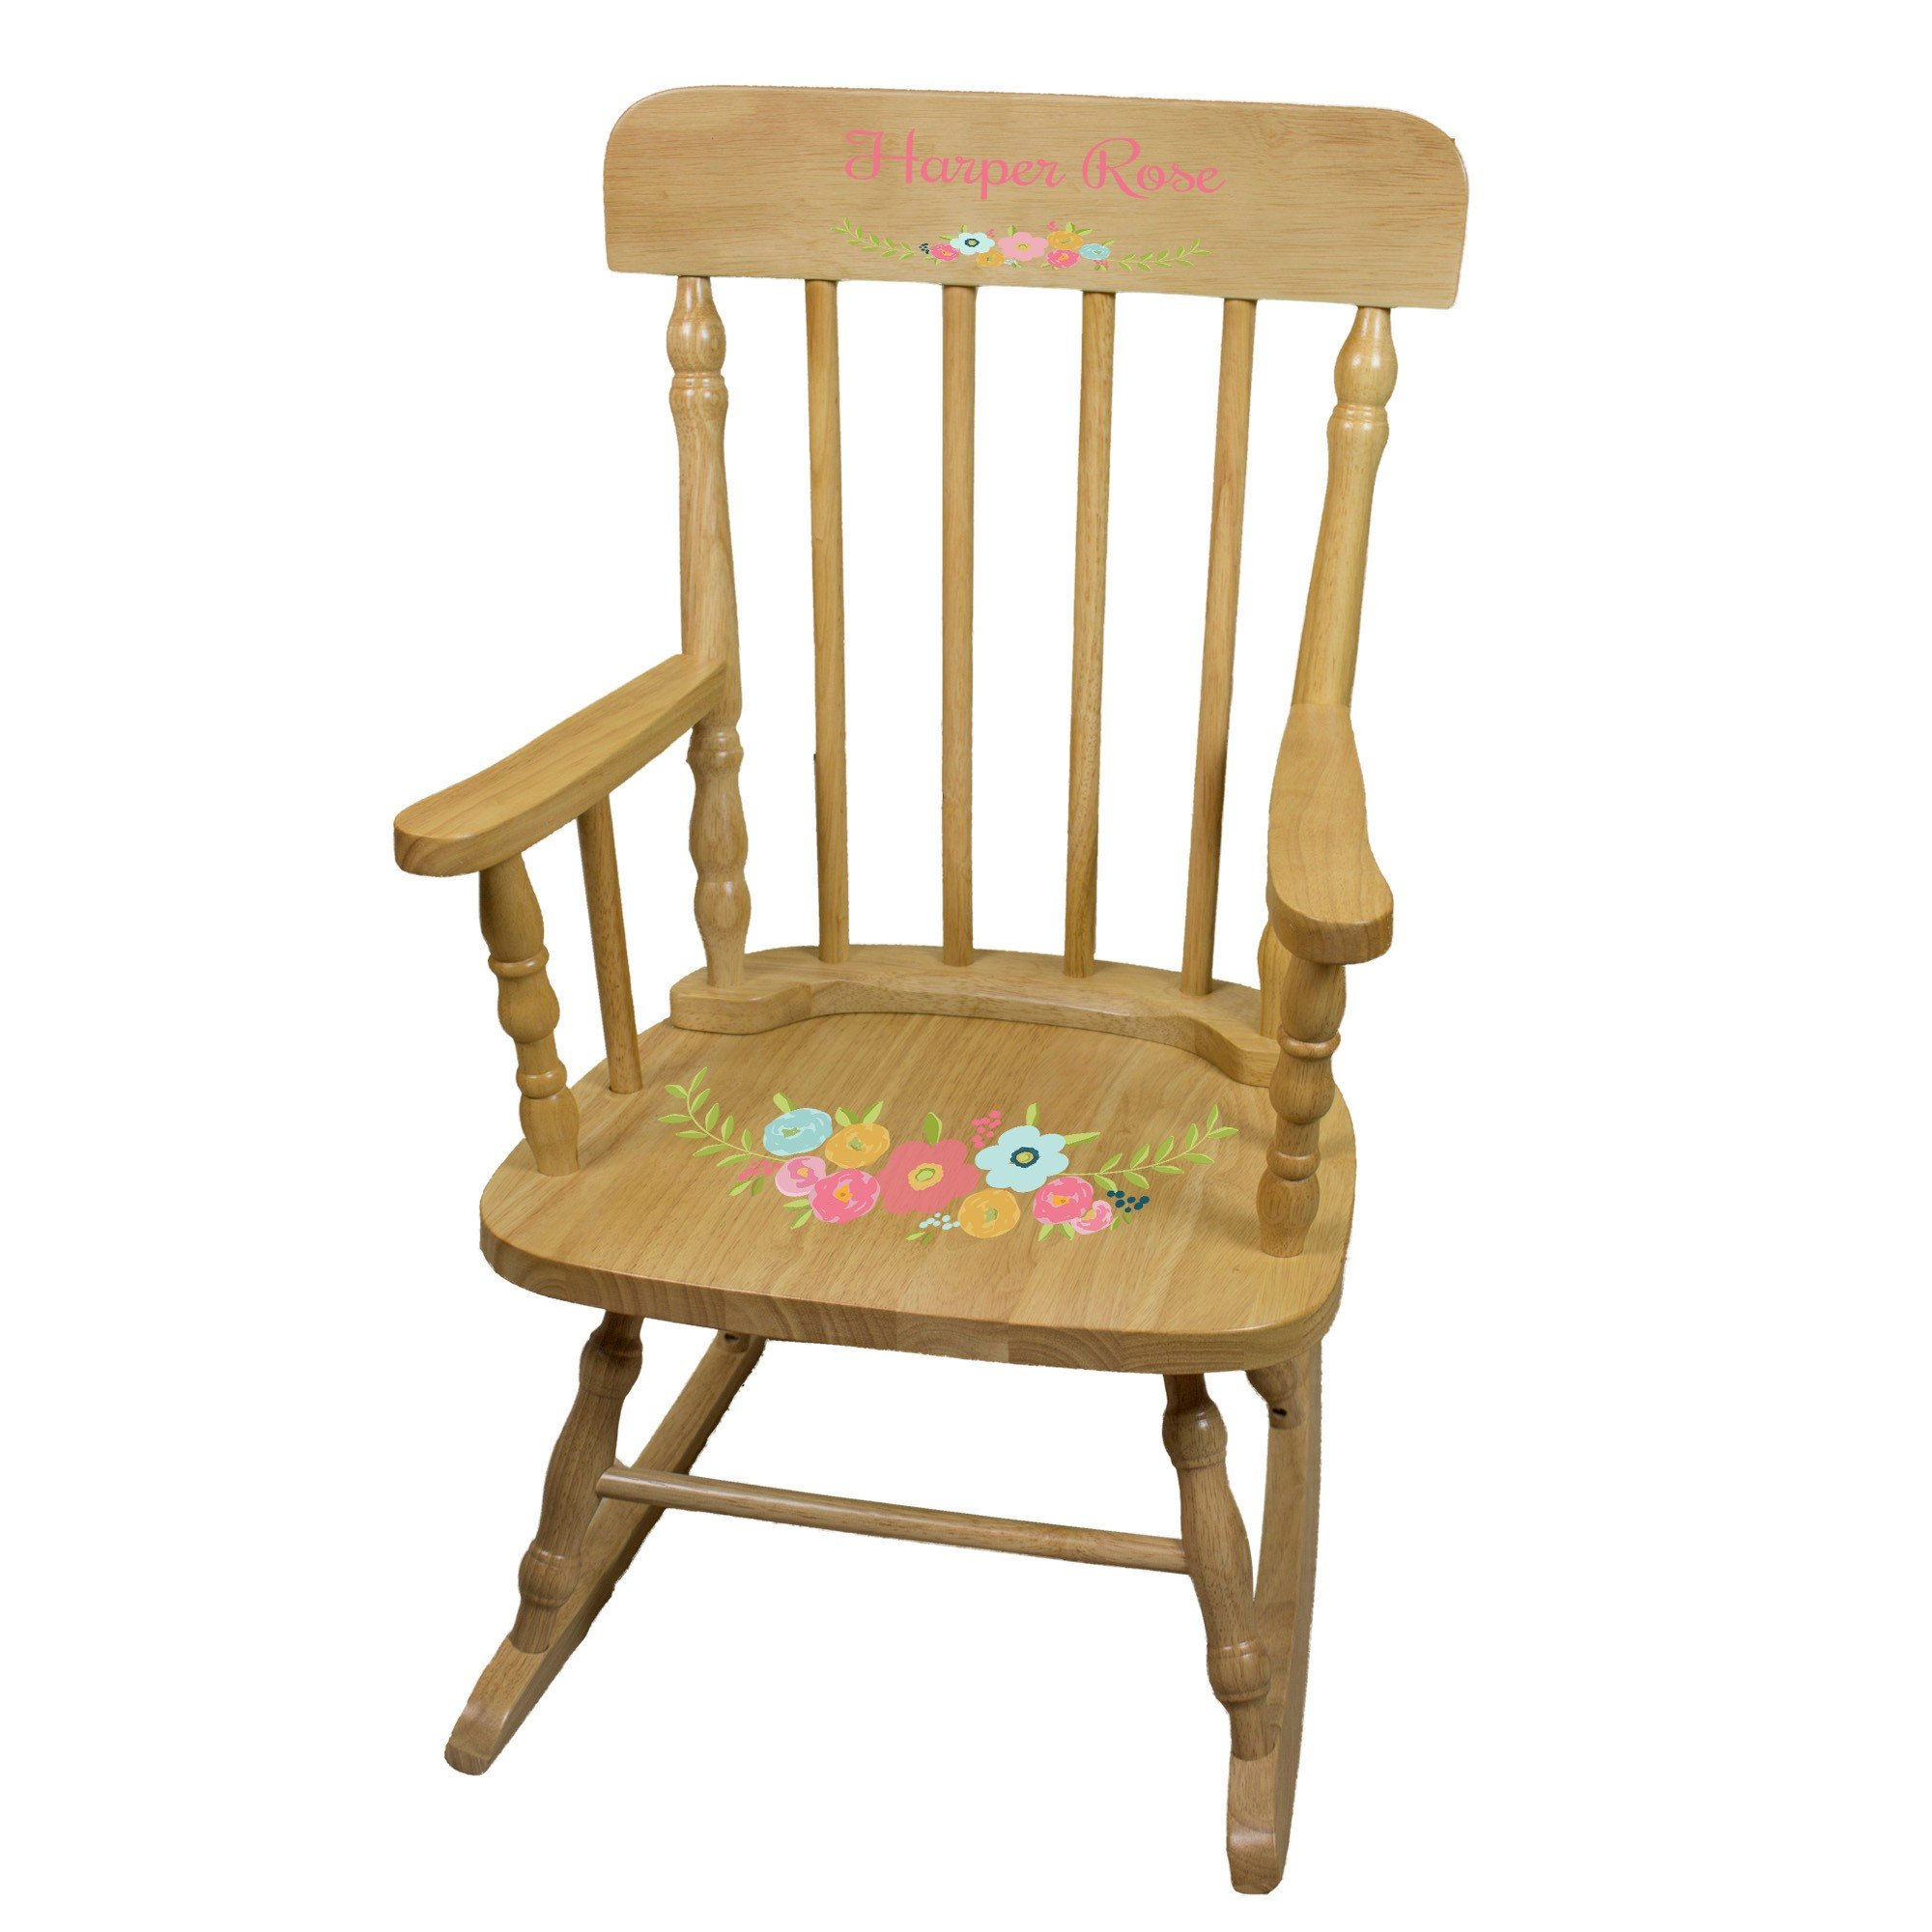 MyBambino Personalized Spring Floral Natural Wooden Childrens Rocking Chair